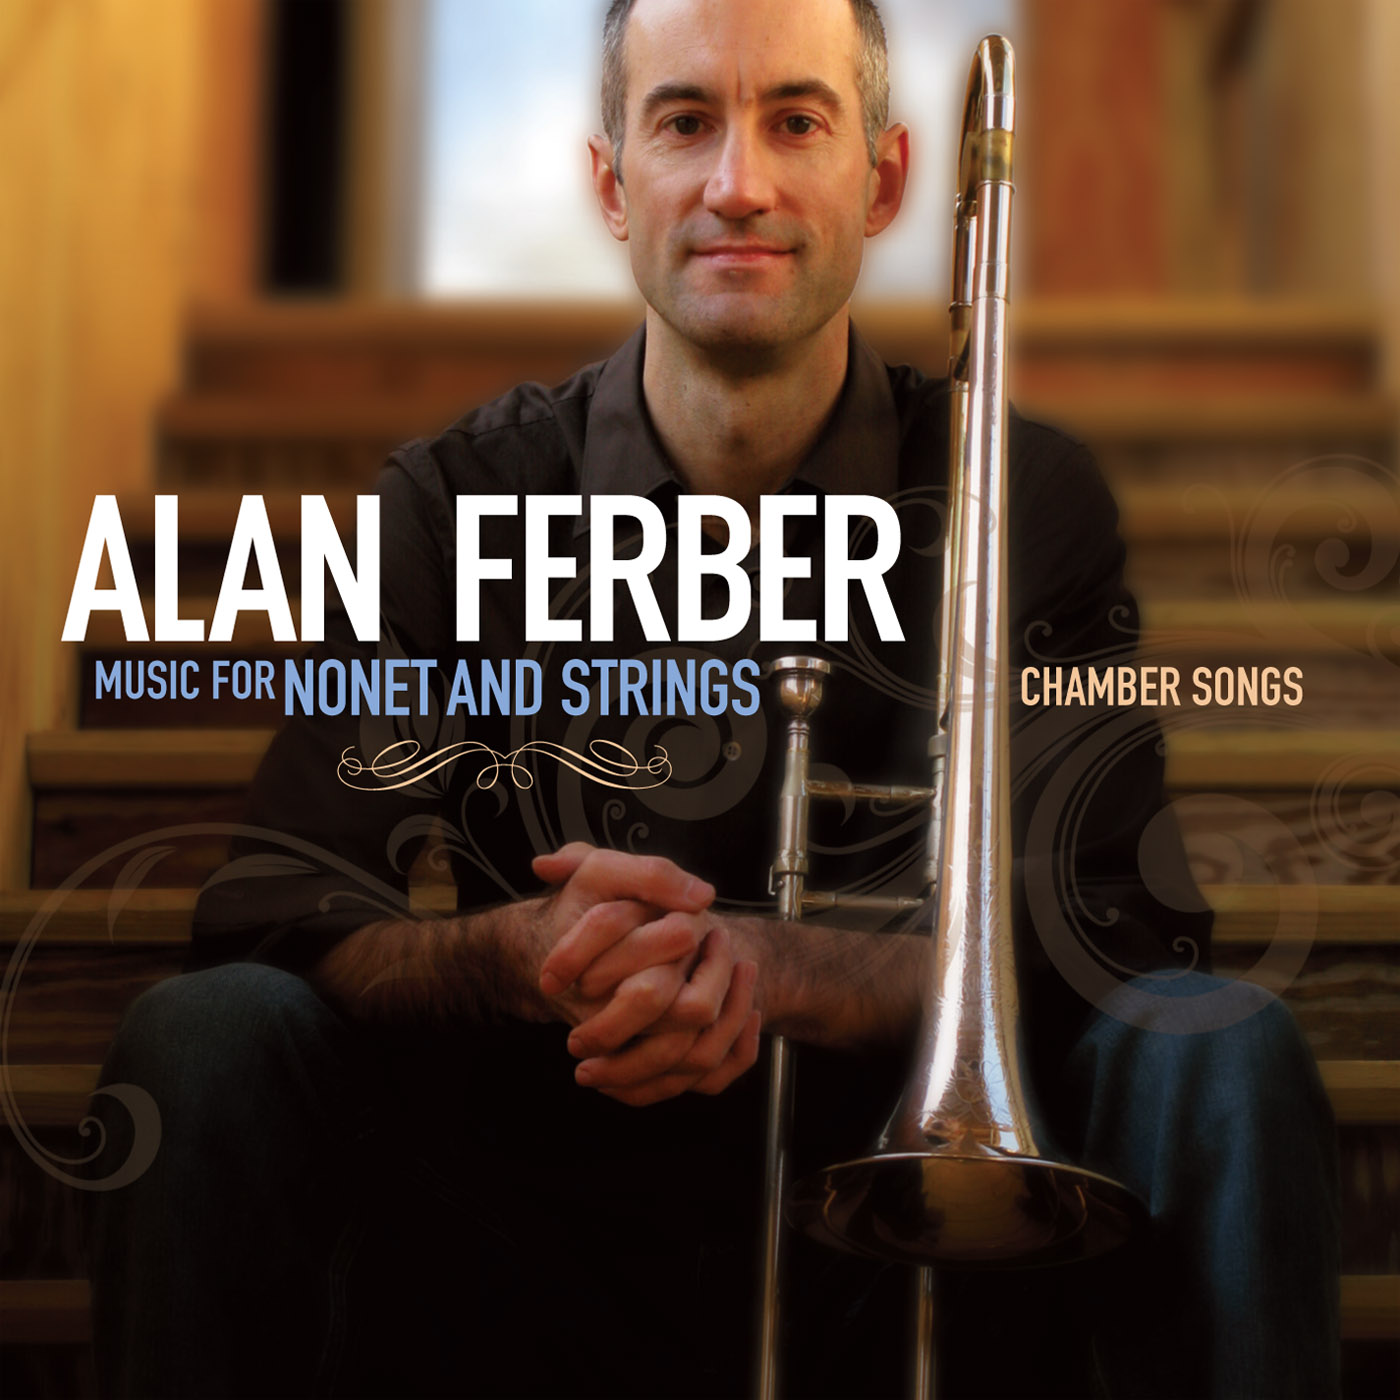 Music For Nonet And Strings - Chamber Songs by Alan Ferber  cover